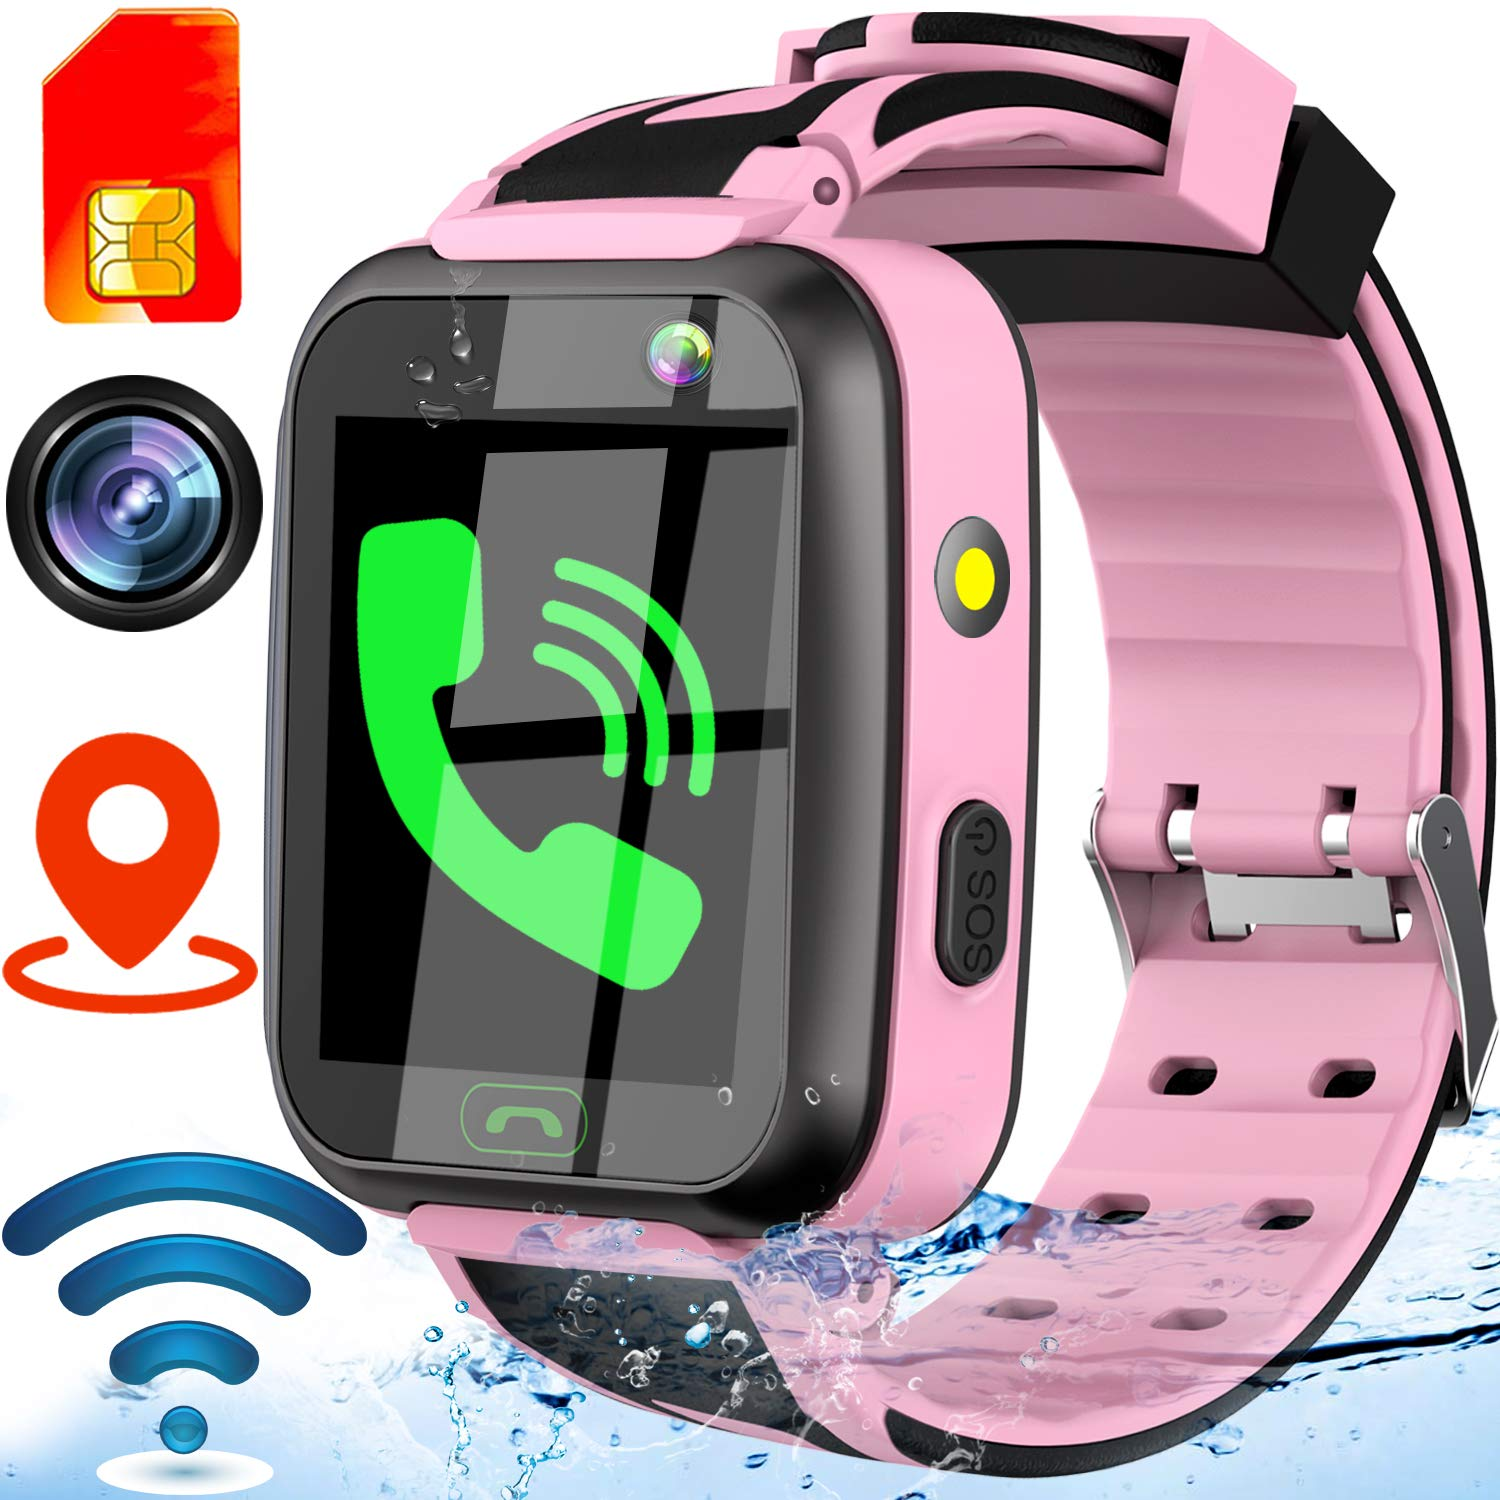 [SIM Card Include] Kids Smart Watch-Upgrade Real GPS Tracker Waterproof WiFi Smart Watch Phone for Boys Girls with Fitness Tracker Pedometer Camera Alarm Clock Kids Back to School Gifts (Pink) by GBD (Image #1)